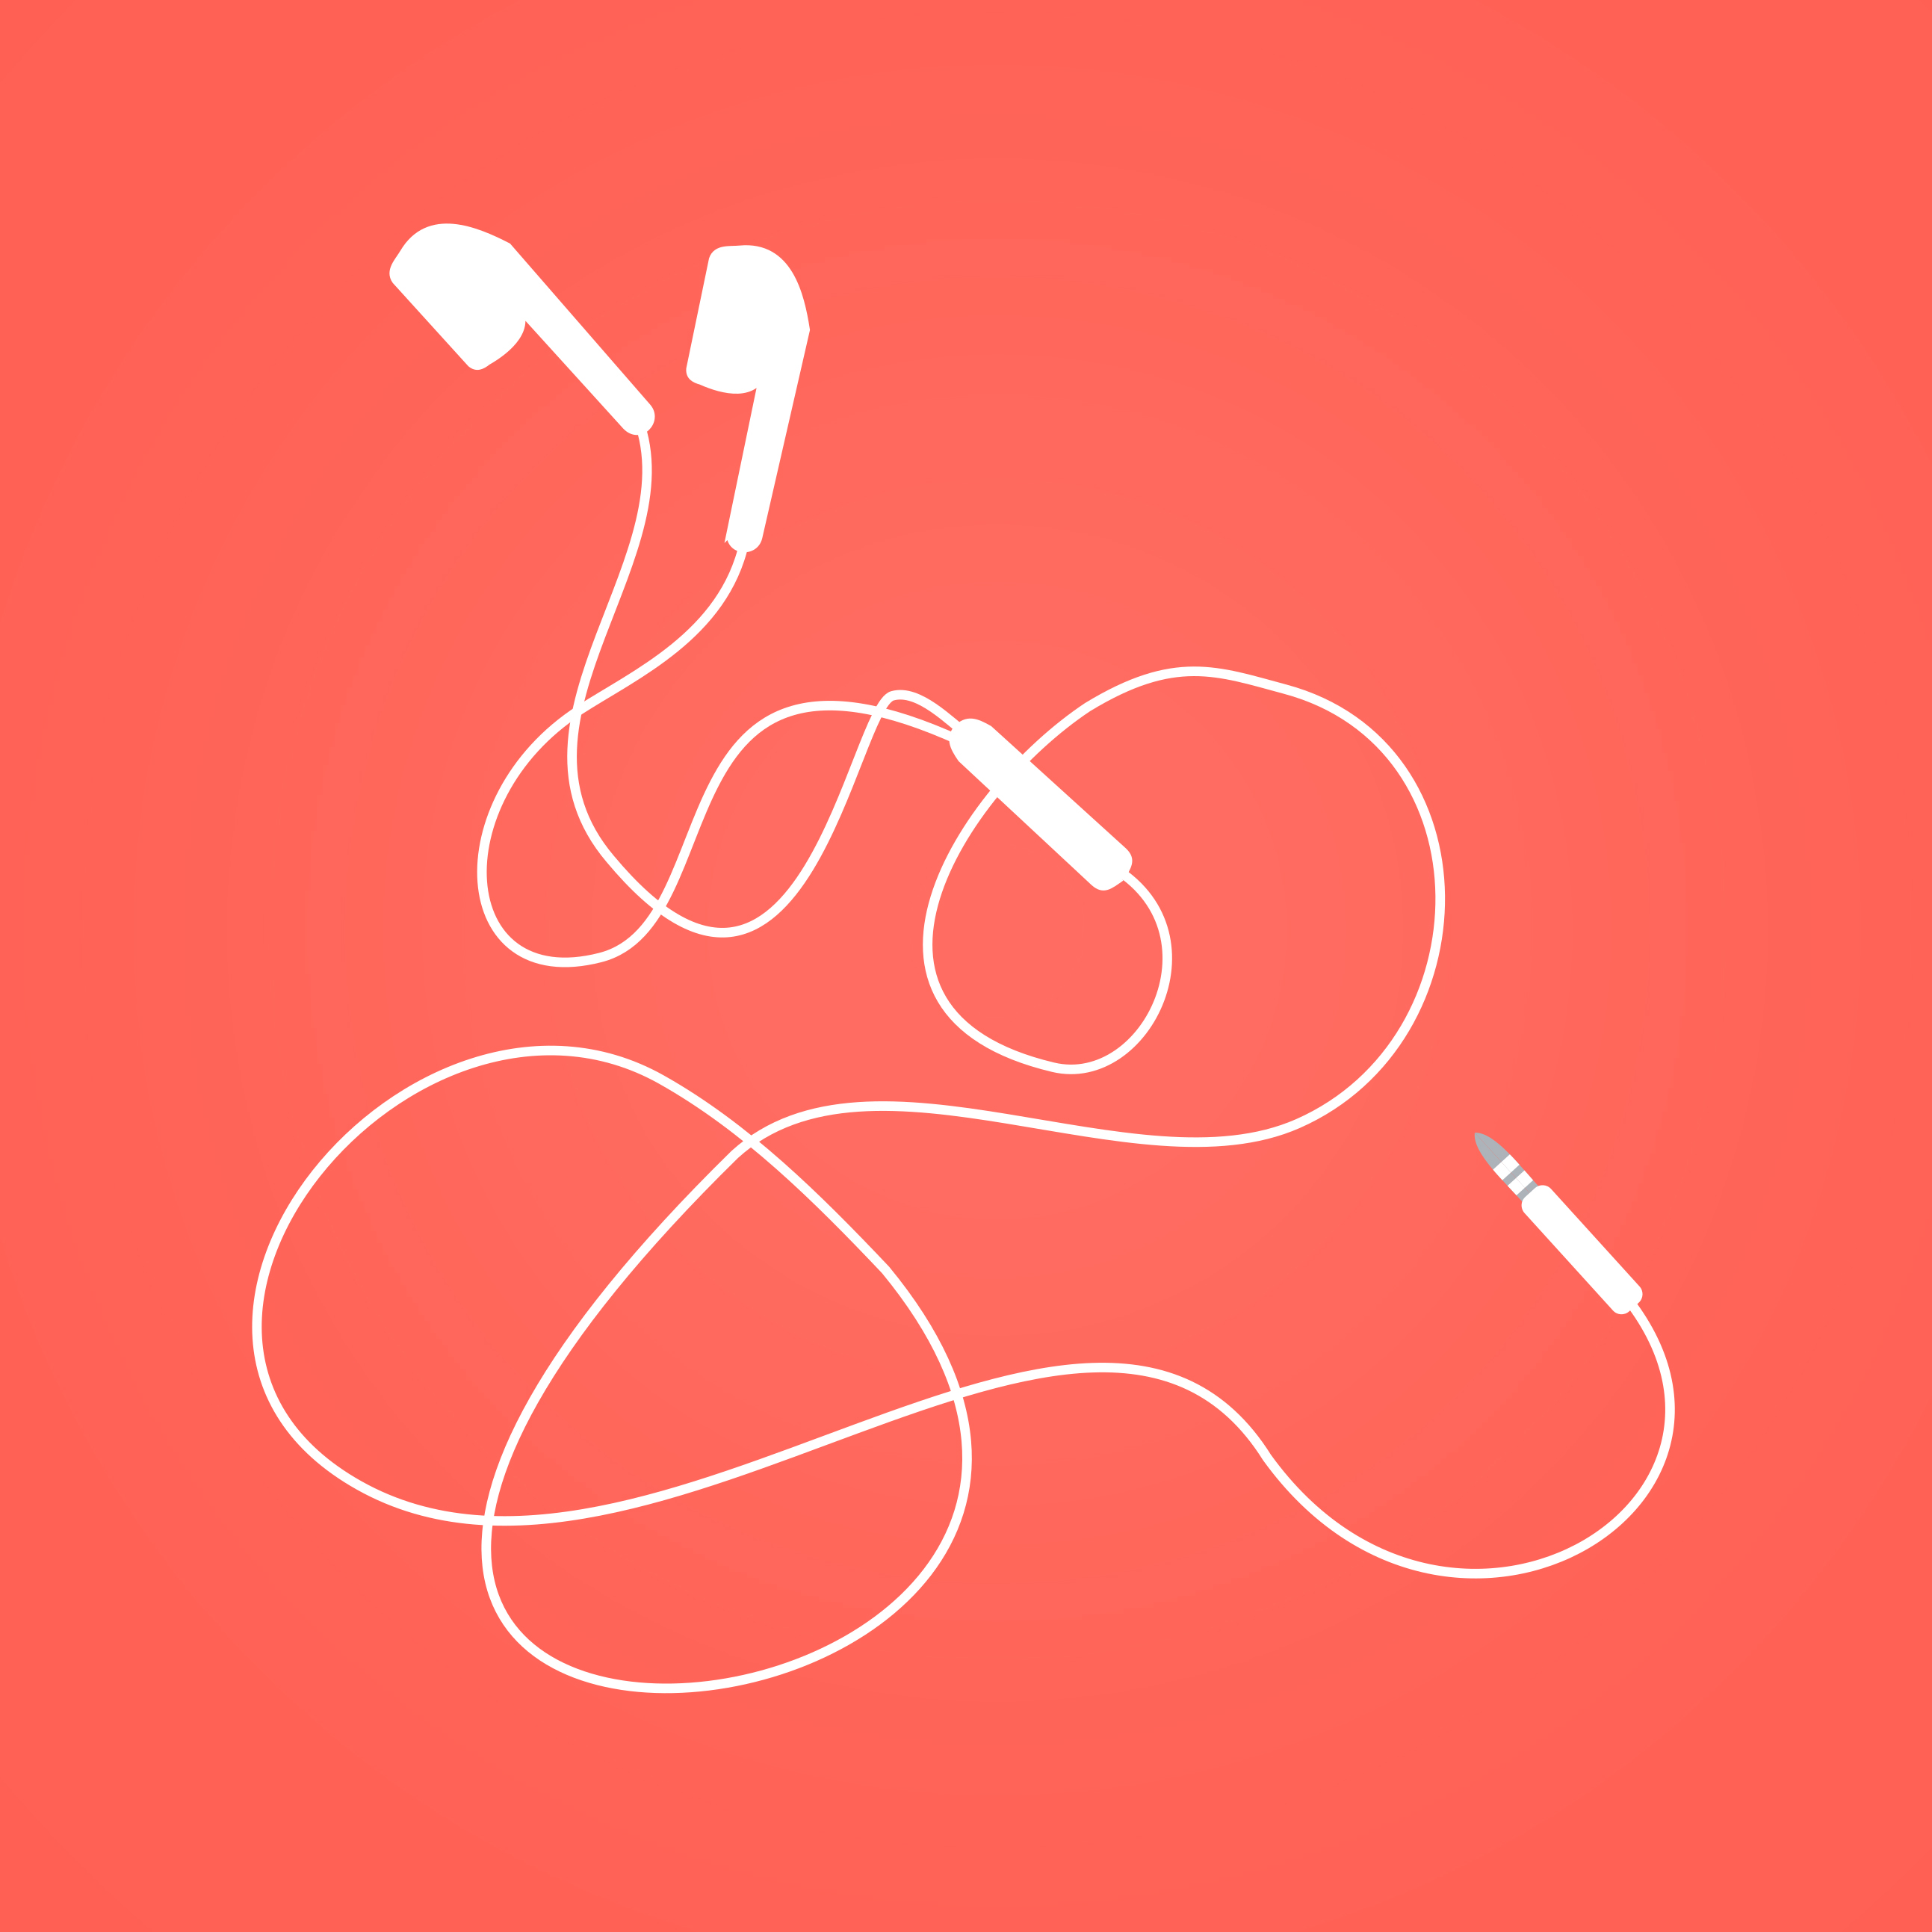 Earphones - earbuds isolated photo